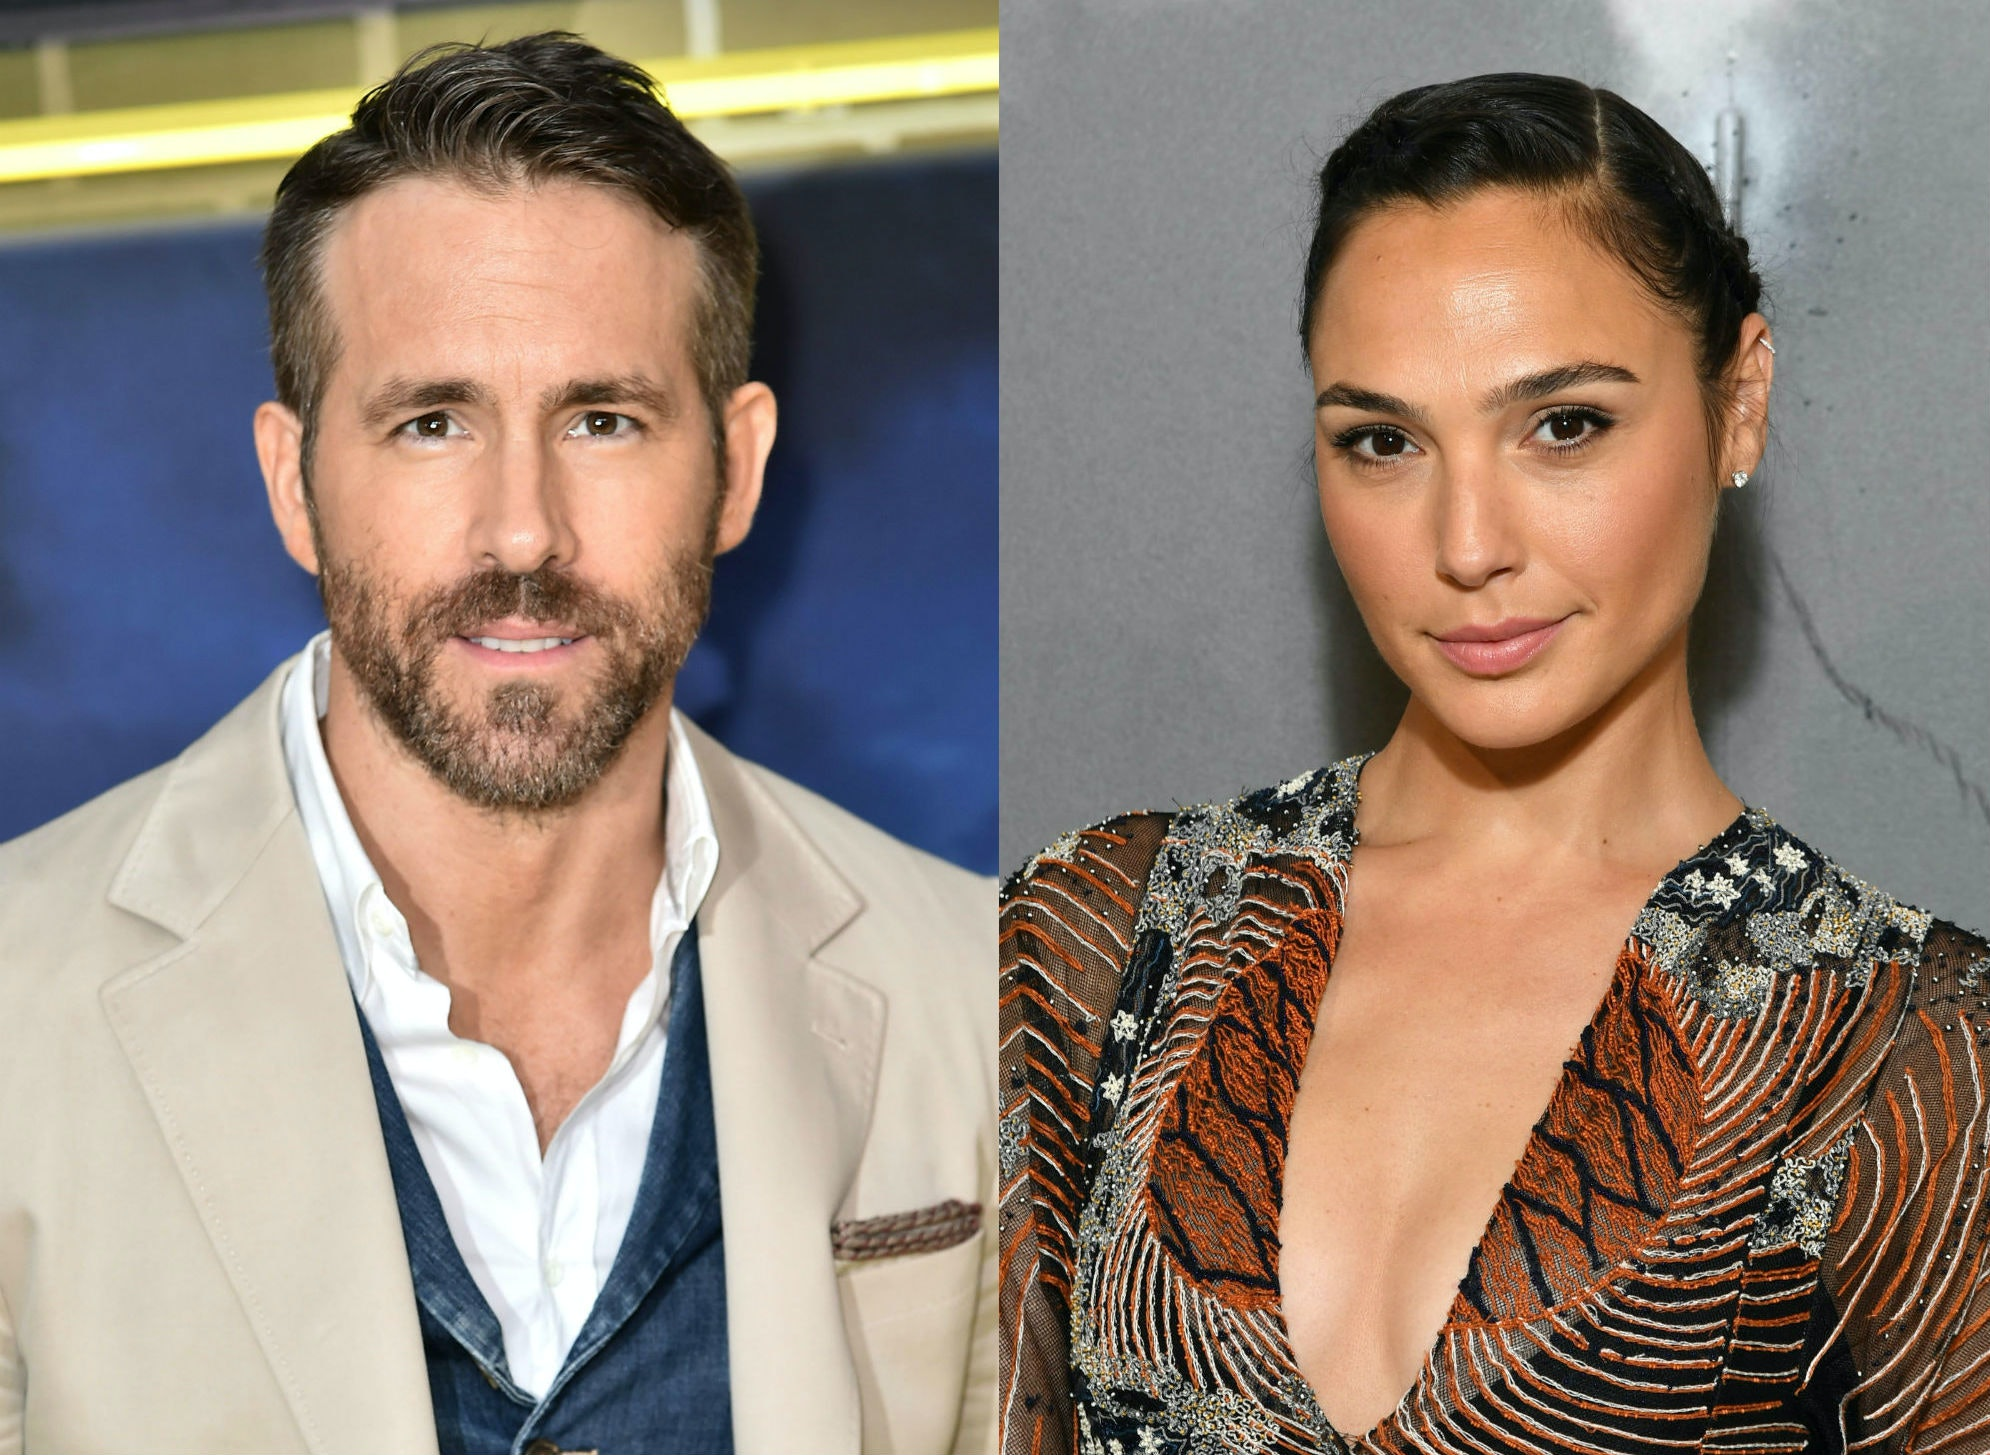 Ryan Reynolds Gal Gadot Are Starring In A Netflix Movie That Sounds Like A Blockbuster In The Making